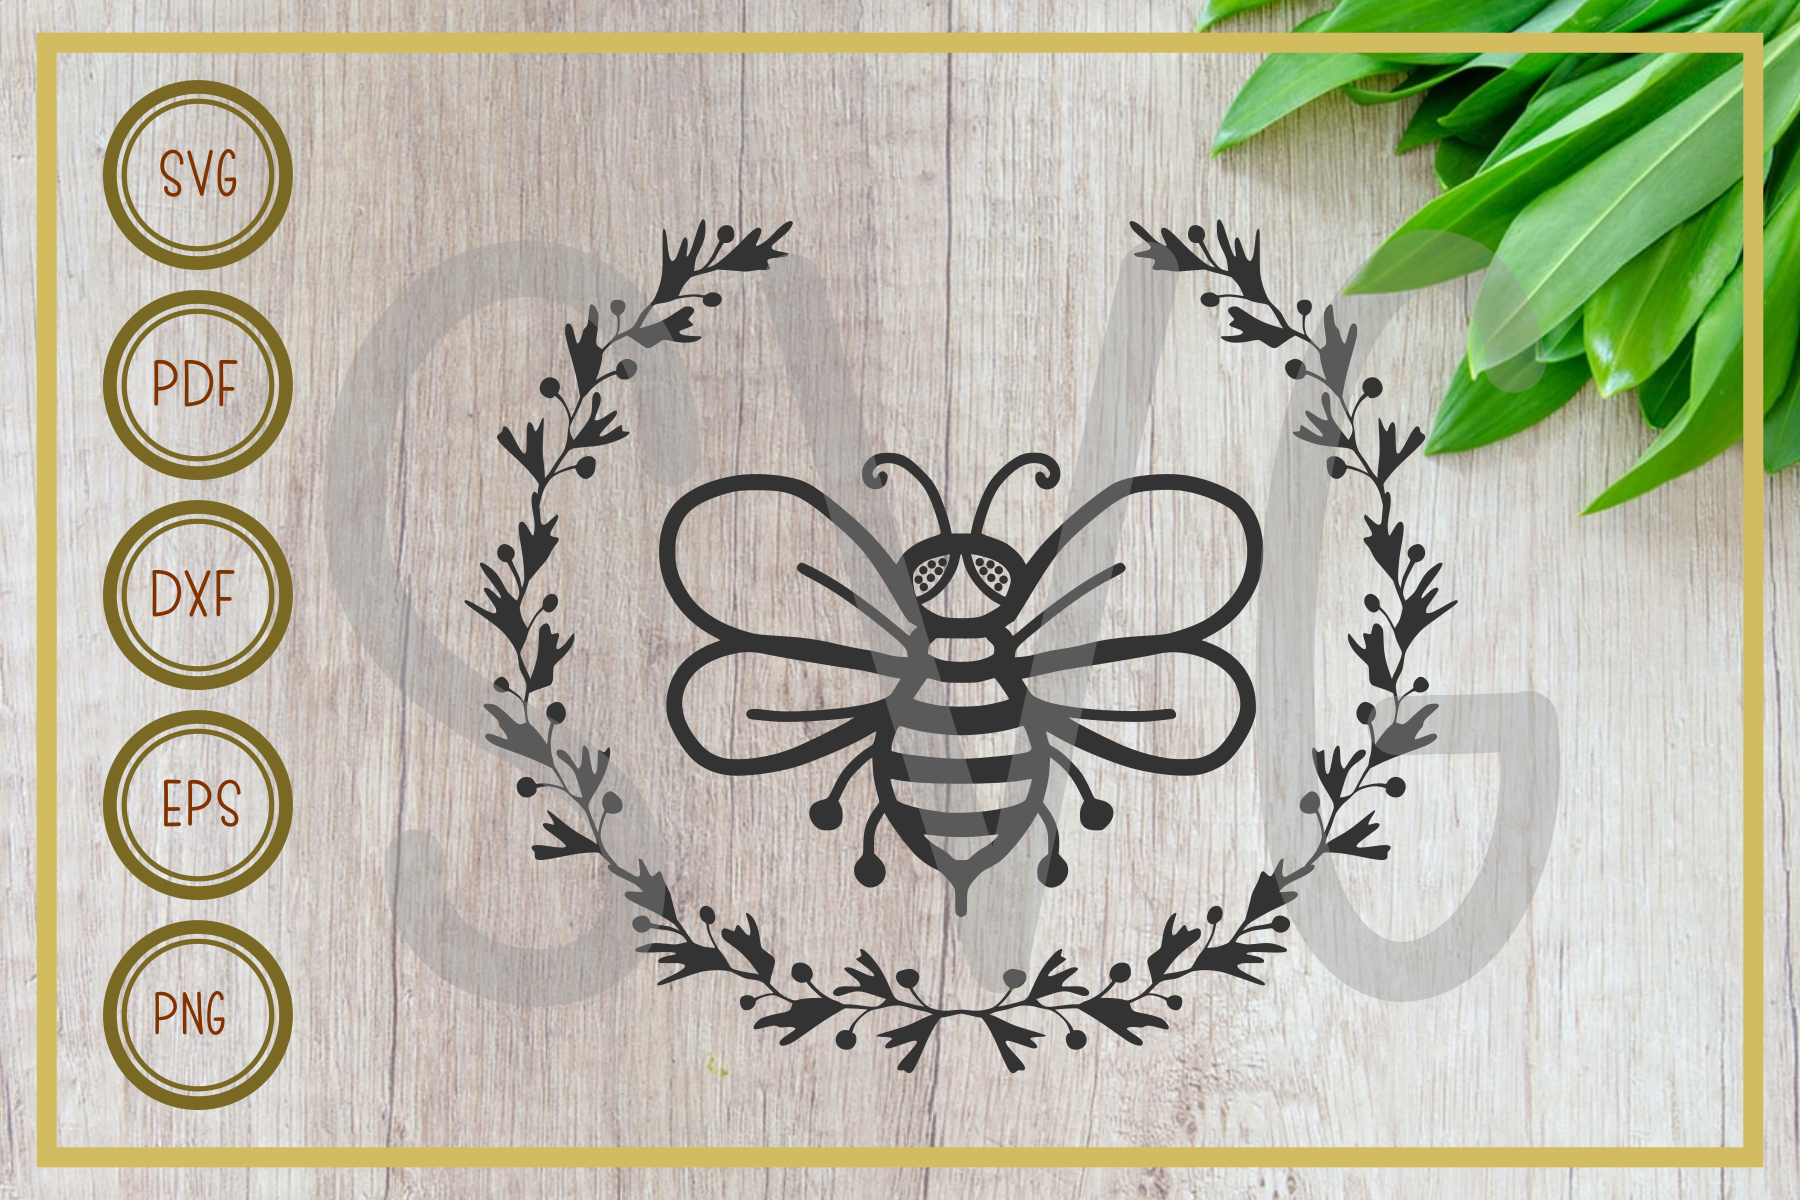 Bee, Bee with Wreath Silhouette SVG File